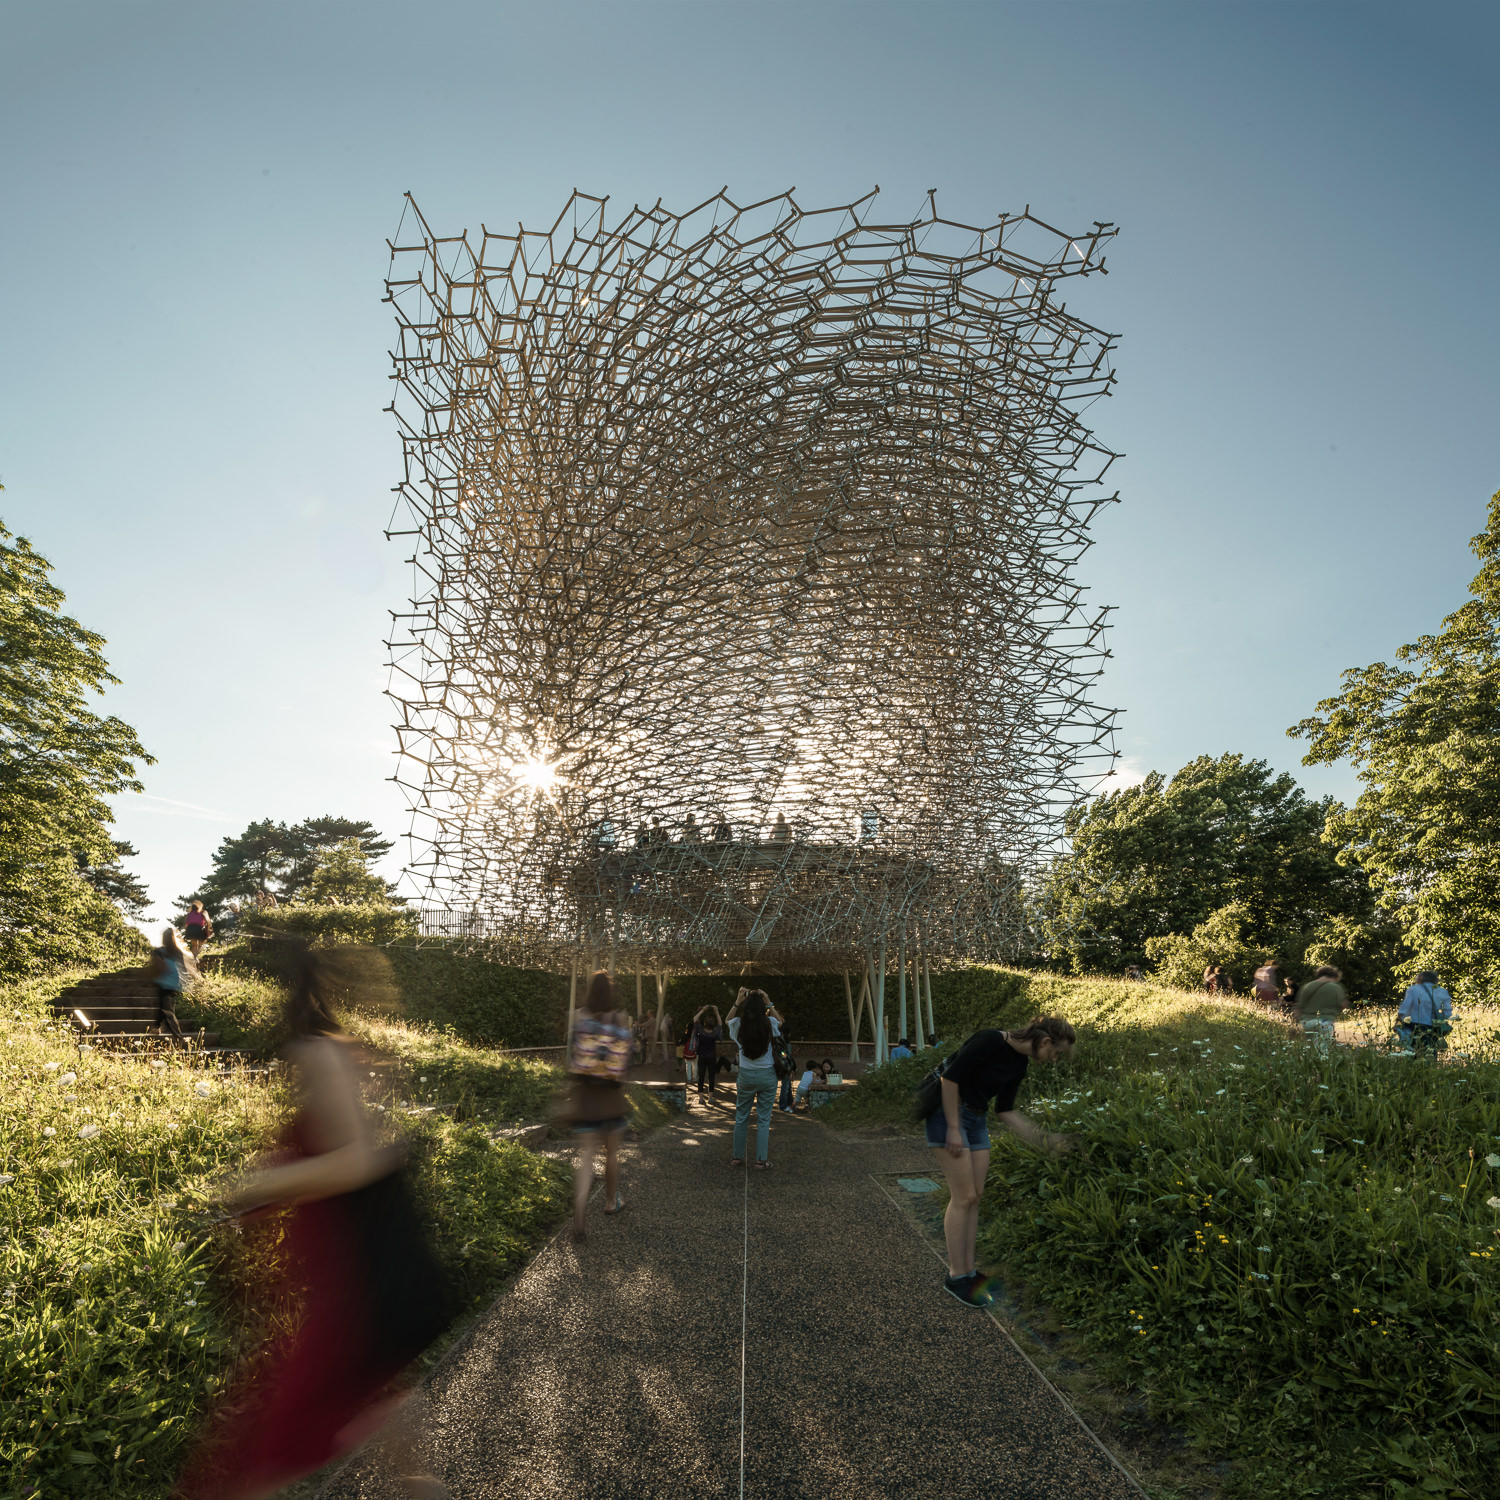 Late Afternoon at The Hive, Kew Gardens. Mark Hadden Architecture Photographer